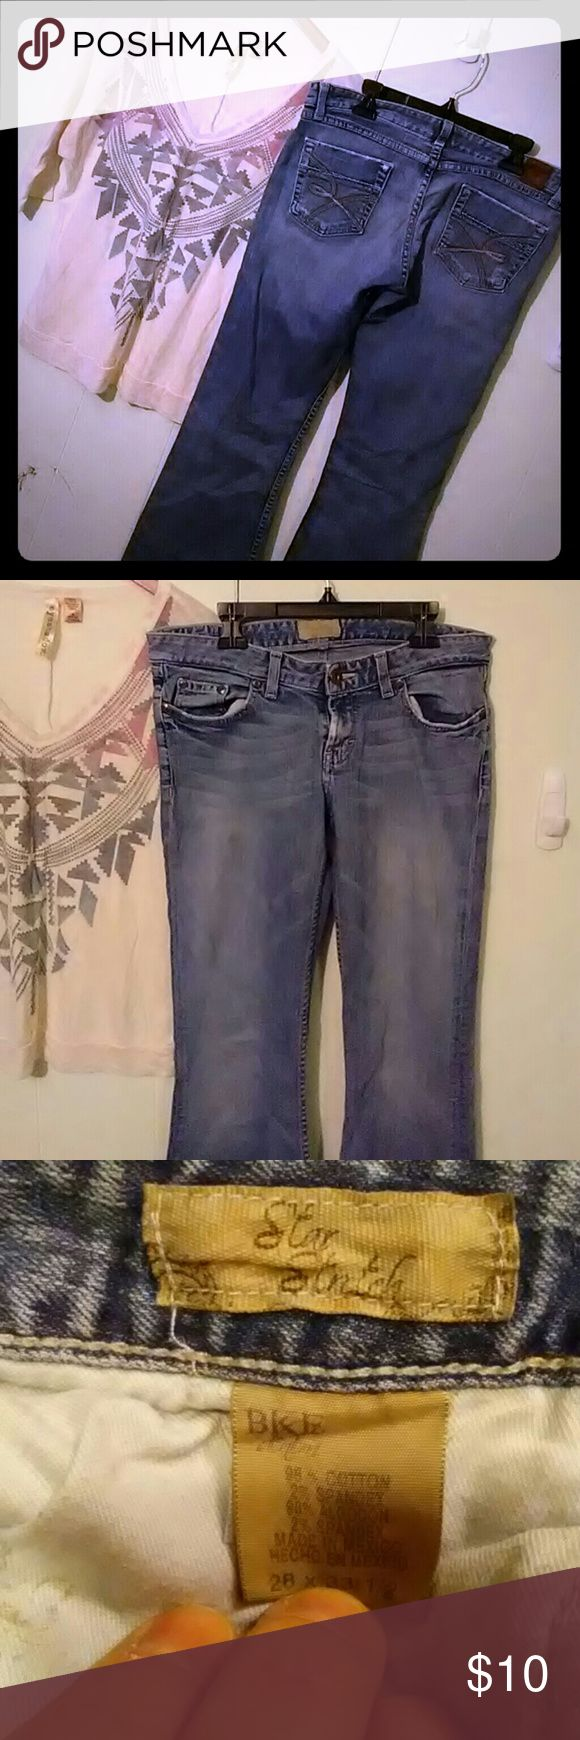 BKE star stretch boot flare lived in jeans BKE brand comfortable lived in boot flare jeans. Have a distressed look. Hem on left leg a little ragged as shown in pic. Size 28 X 33 1/2. You wont find a better price on this brand. BKE Jeans Boot Cut